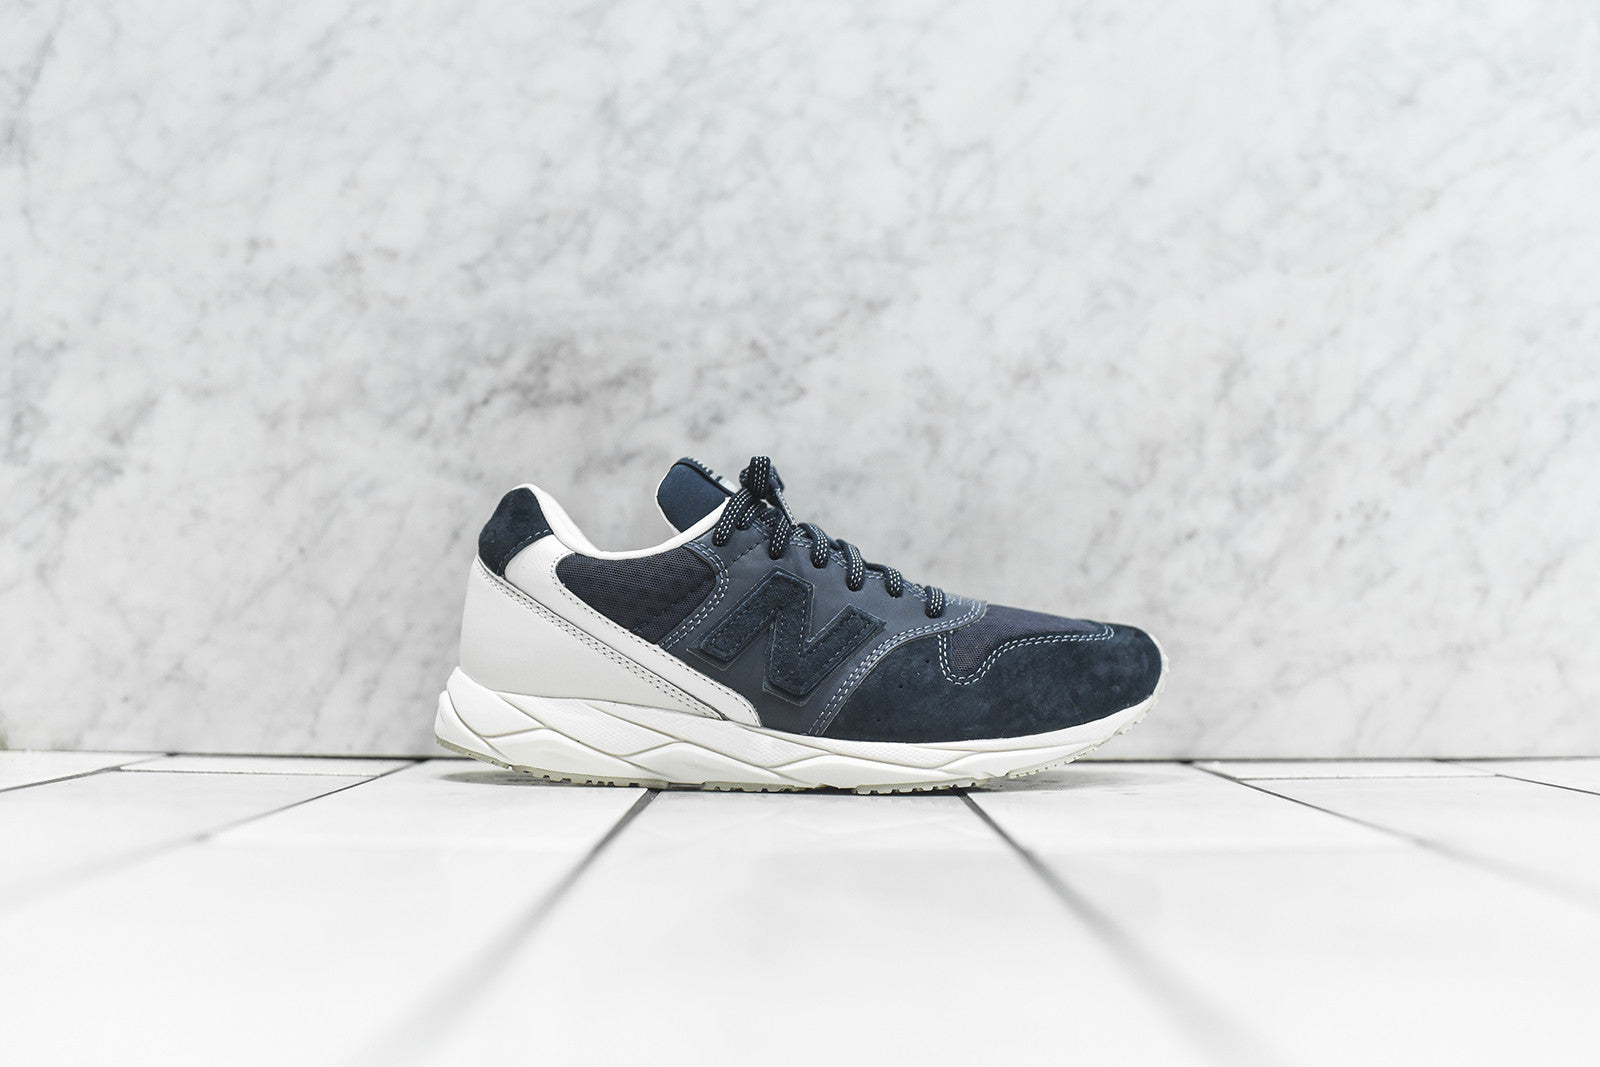 New Balance WMNS RT96 Mash-Up - Outer Space Navy / Angora